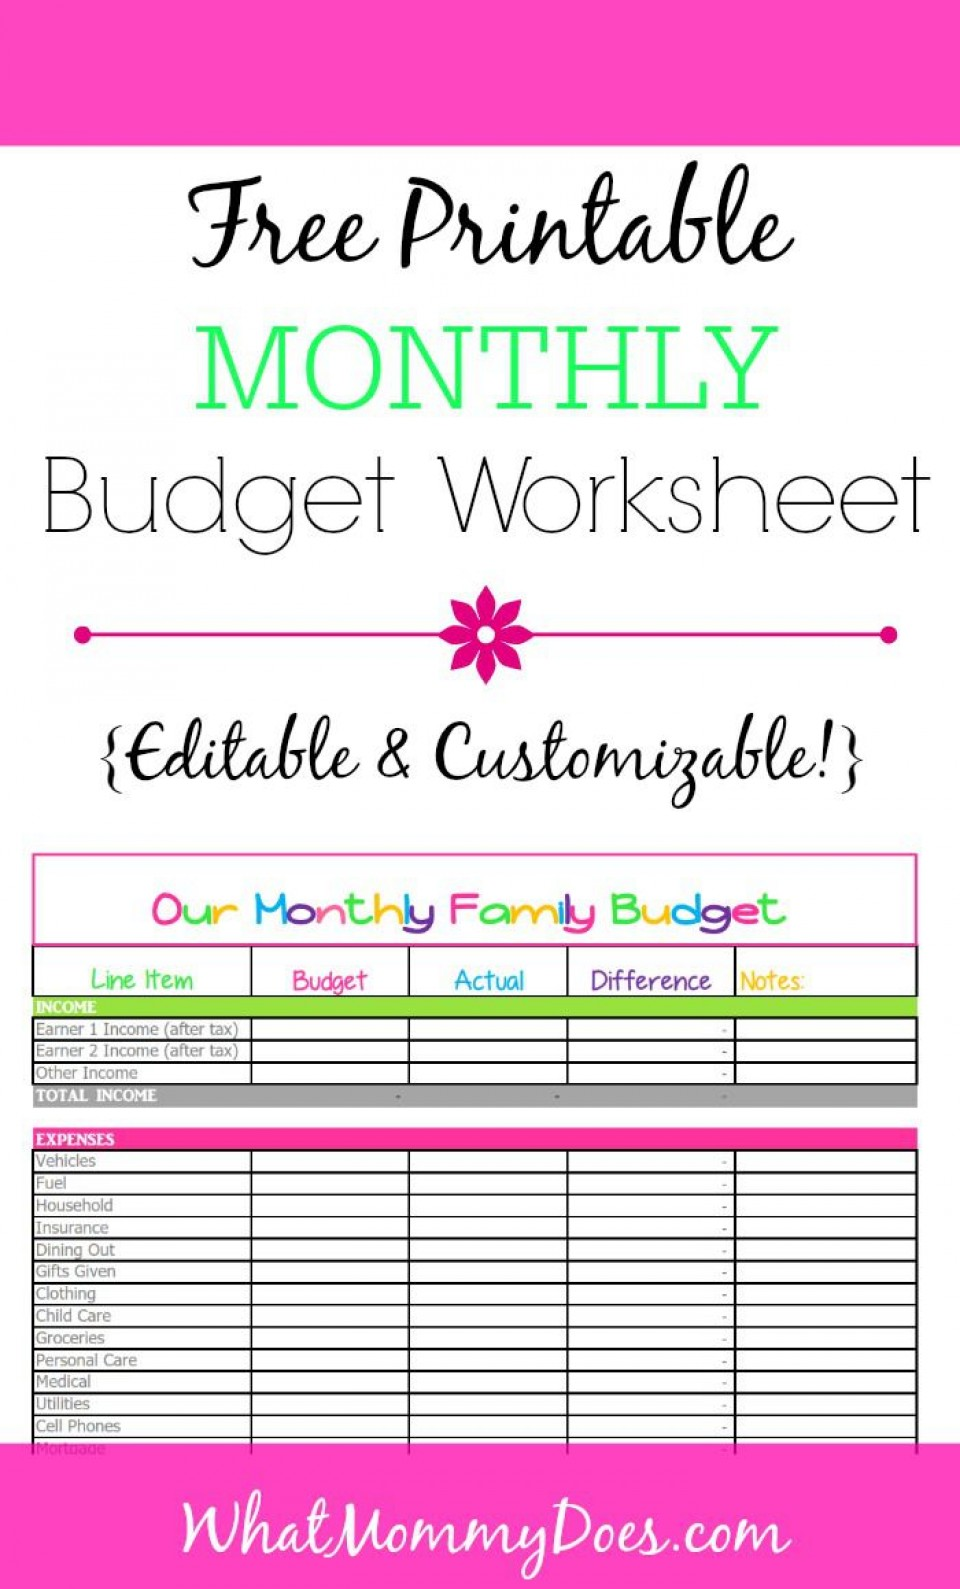 008 Awesome Free Printable Home Budget Template Photo  Form Sheet960